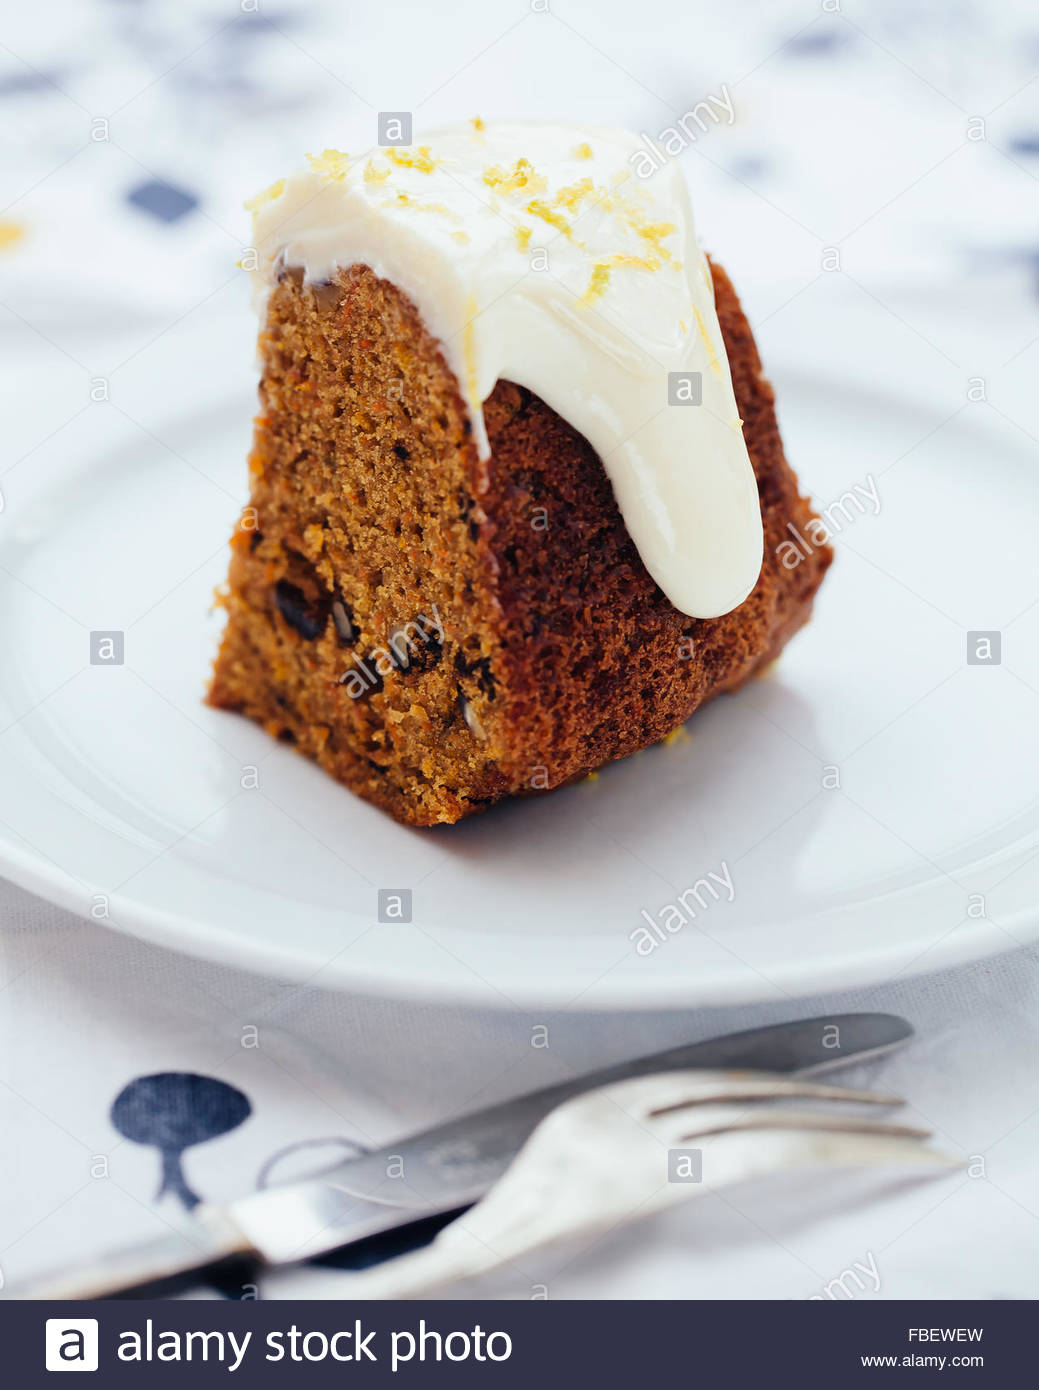 A piece of carrot cake - Stock Image